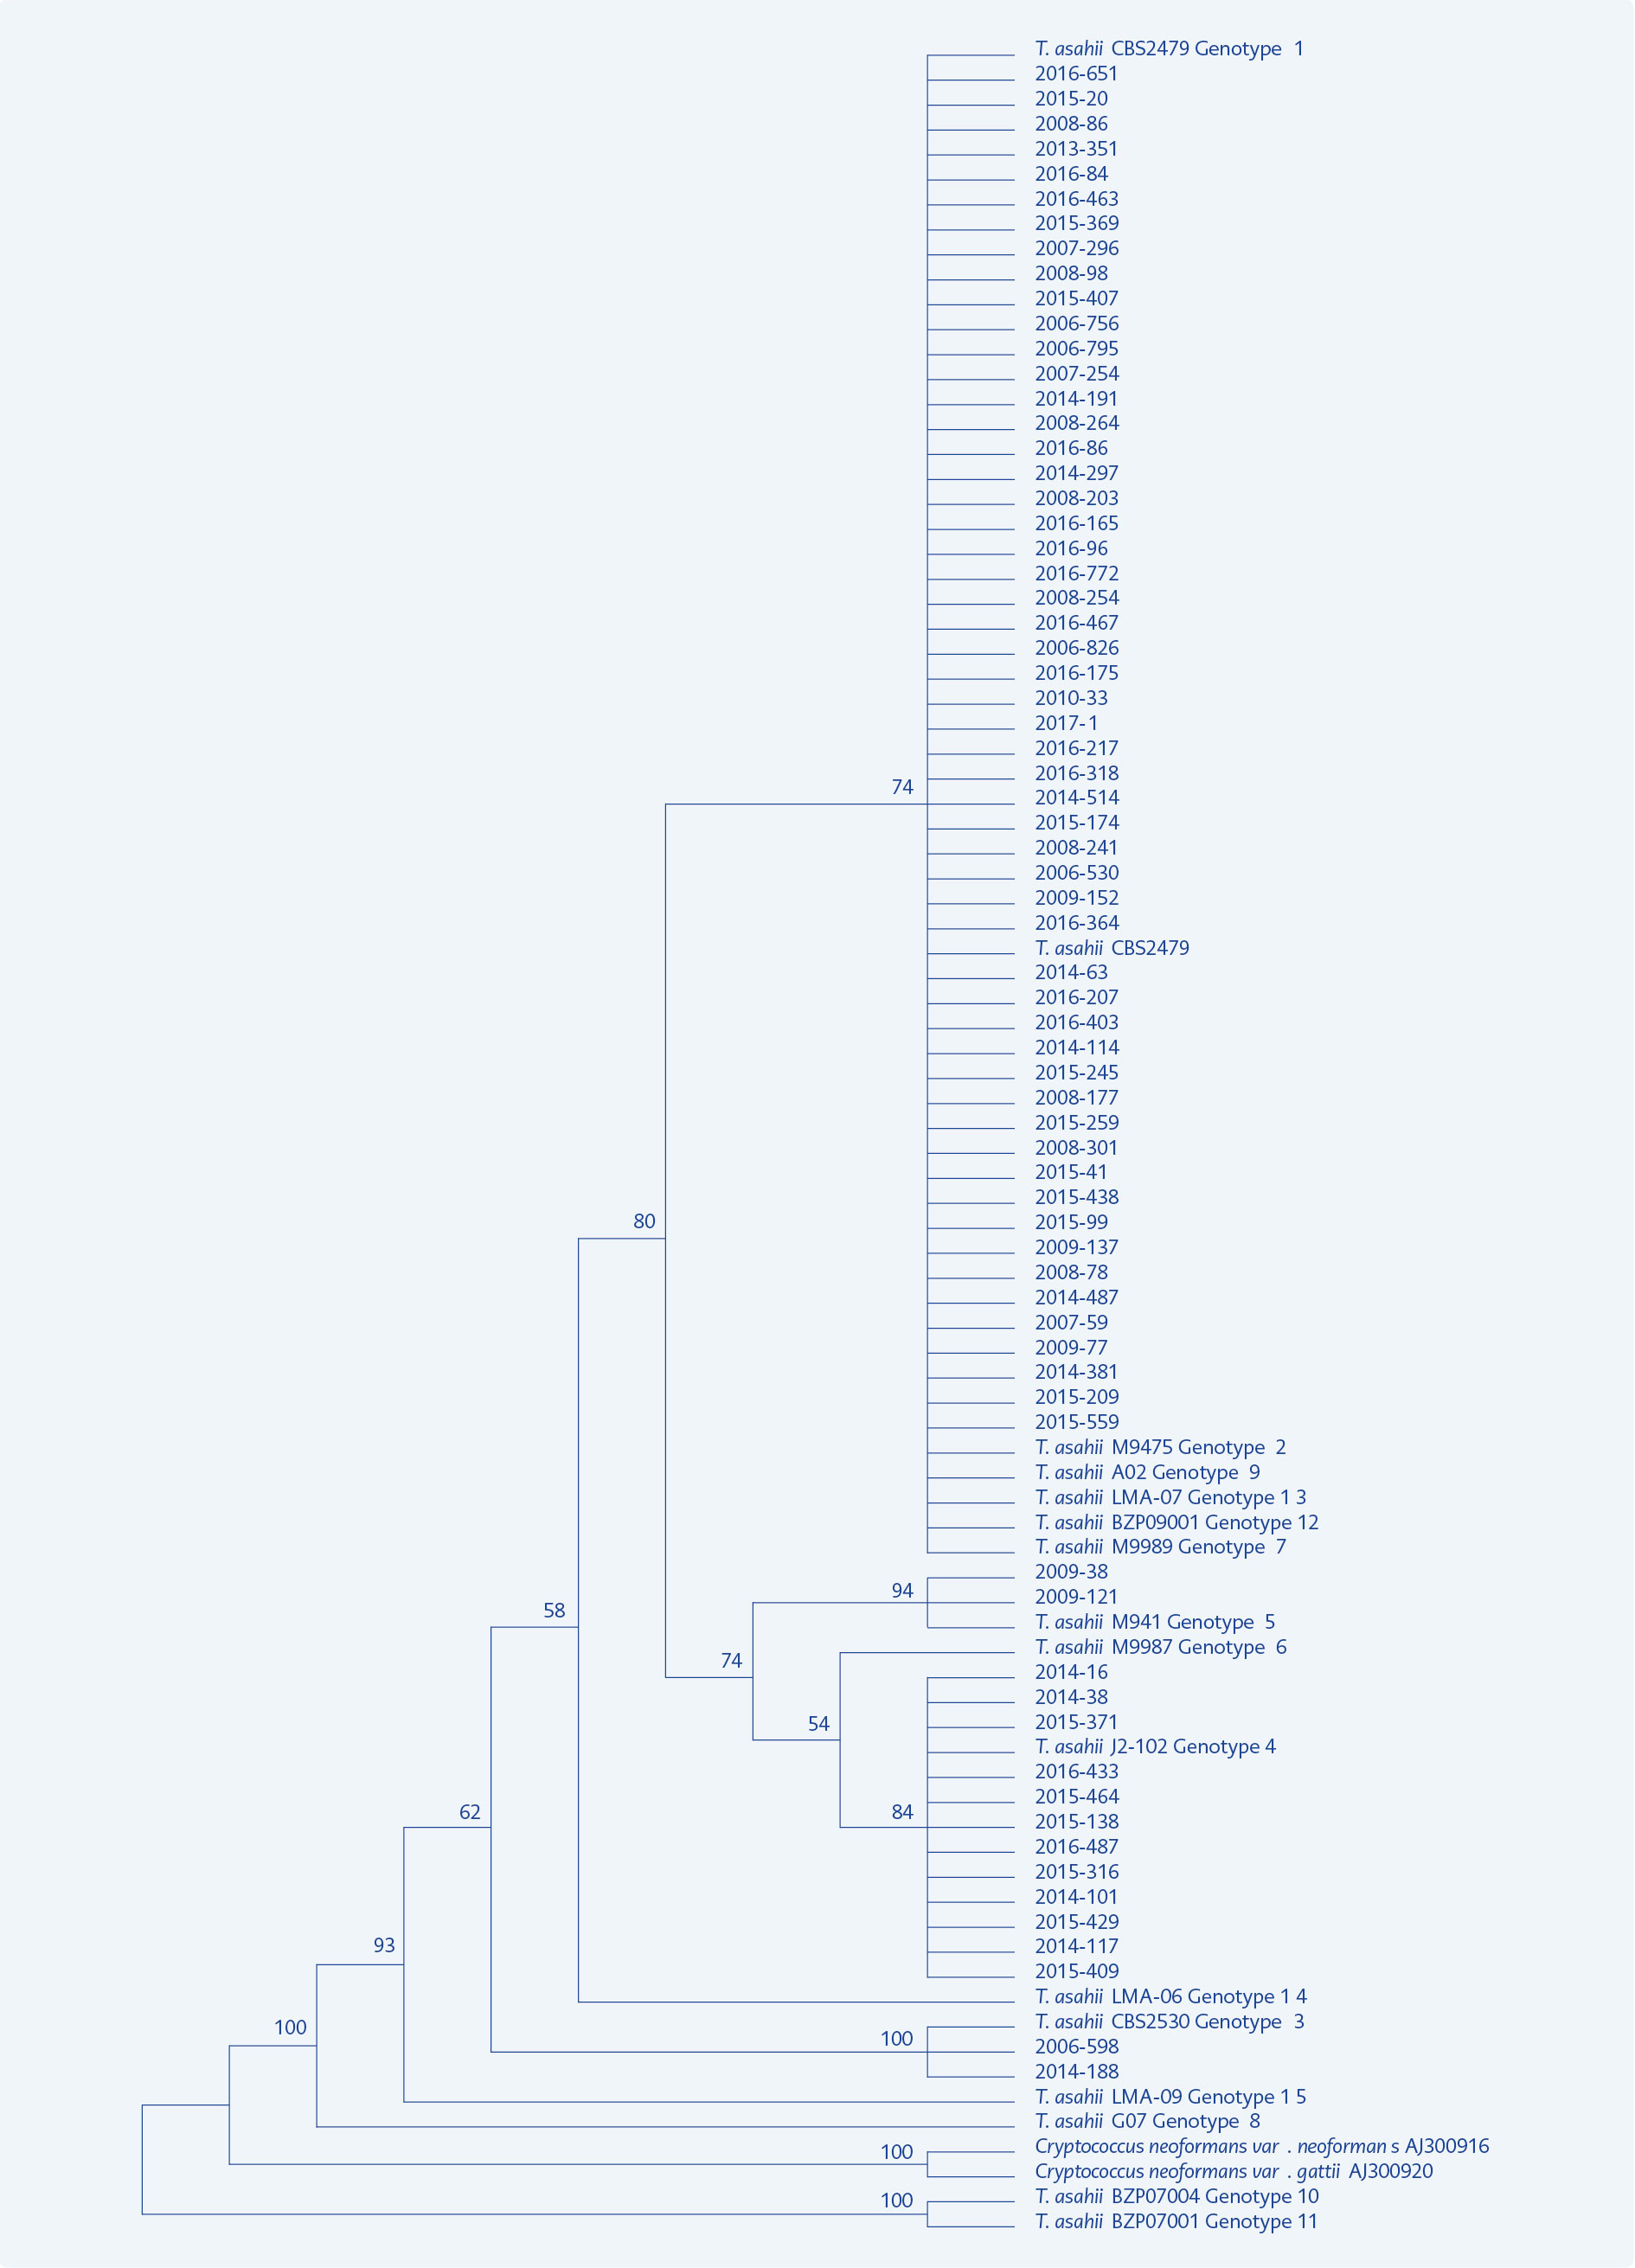 <strong>Figure 1.</strong> Phylogenetic tree constructed for distribution of 70 <i>T. asahii</i> clinical isolates and 15 reference genotypes.